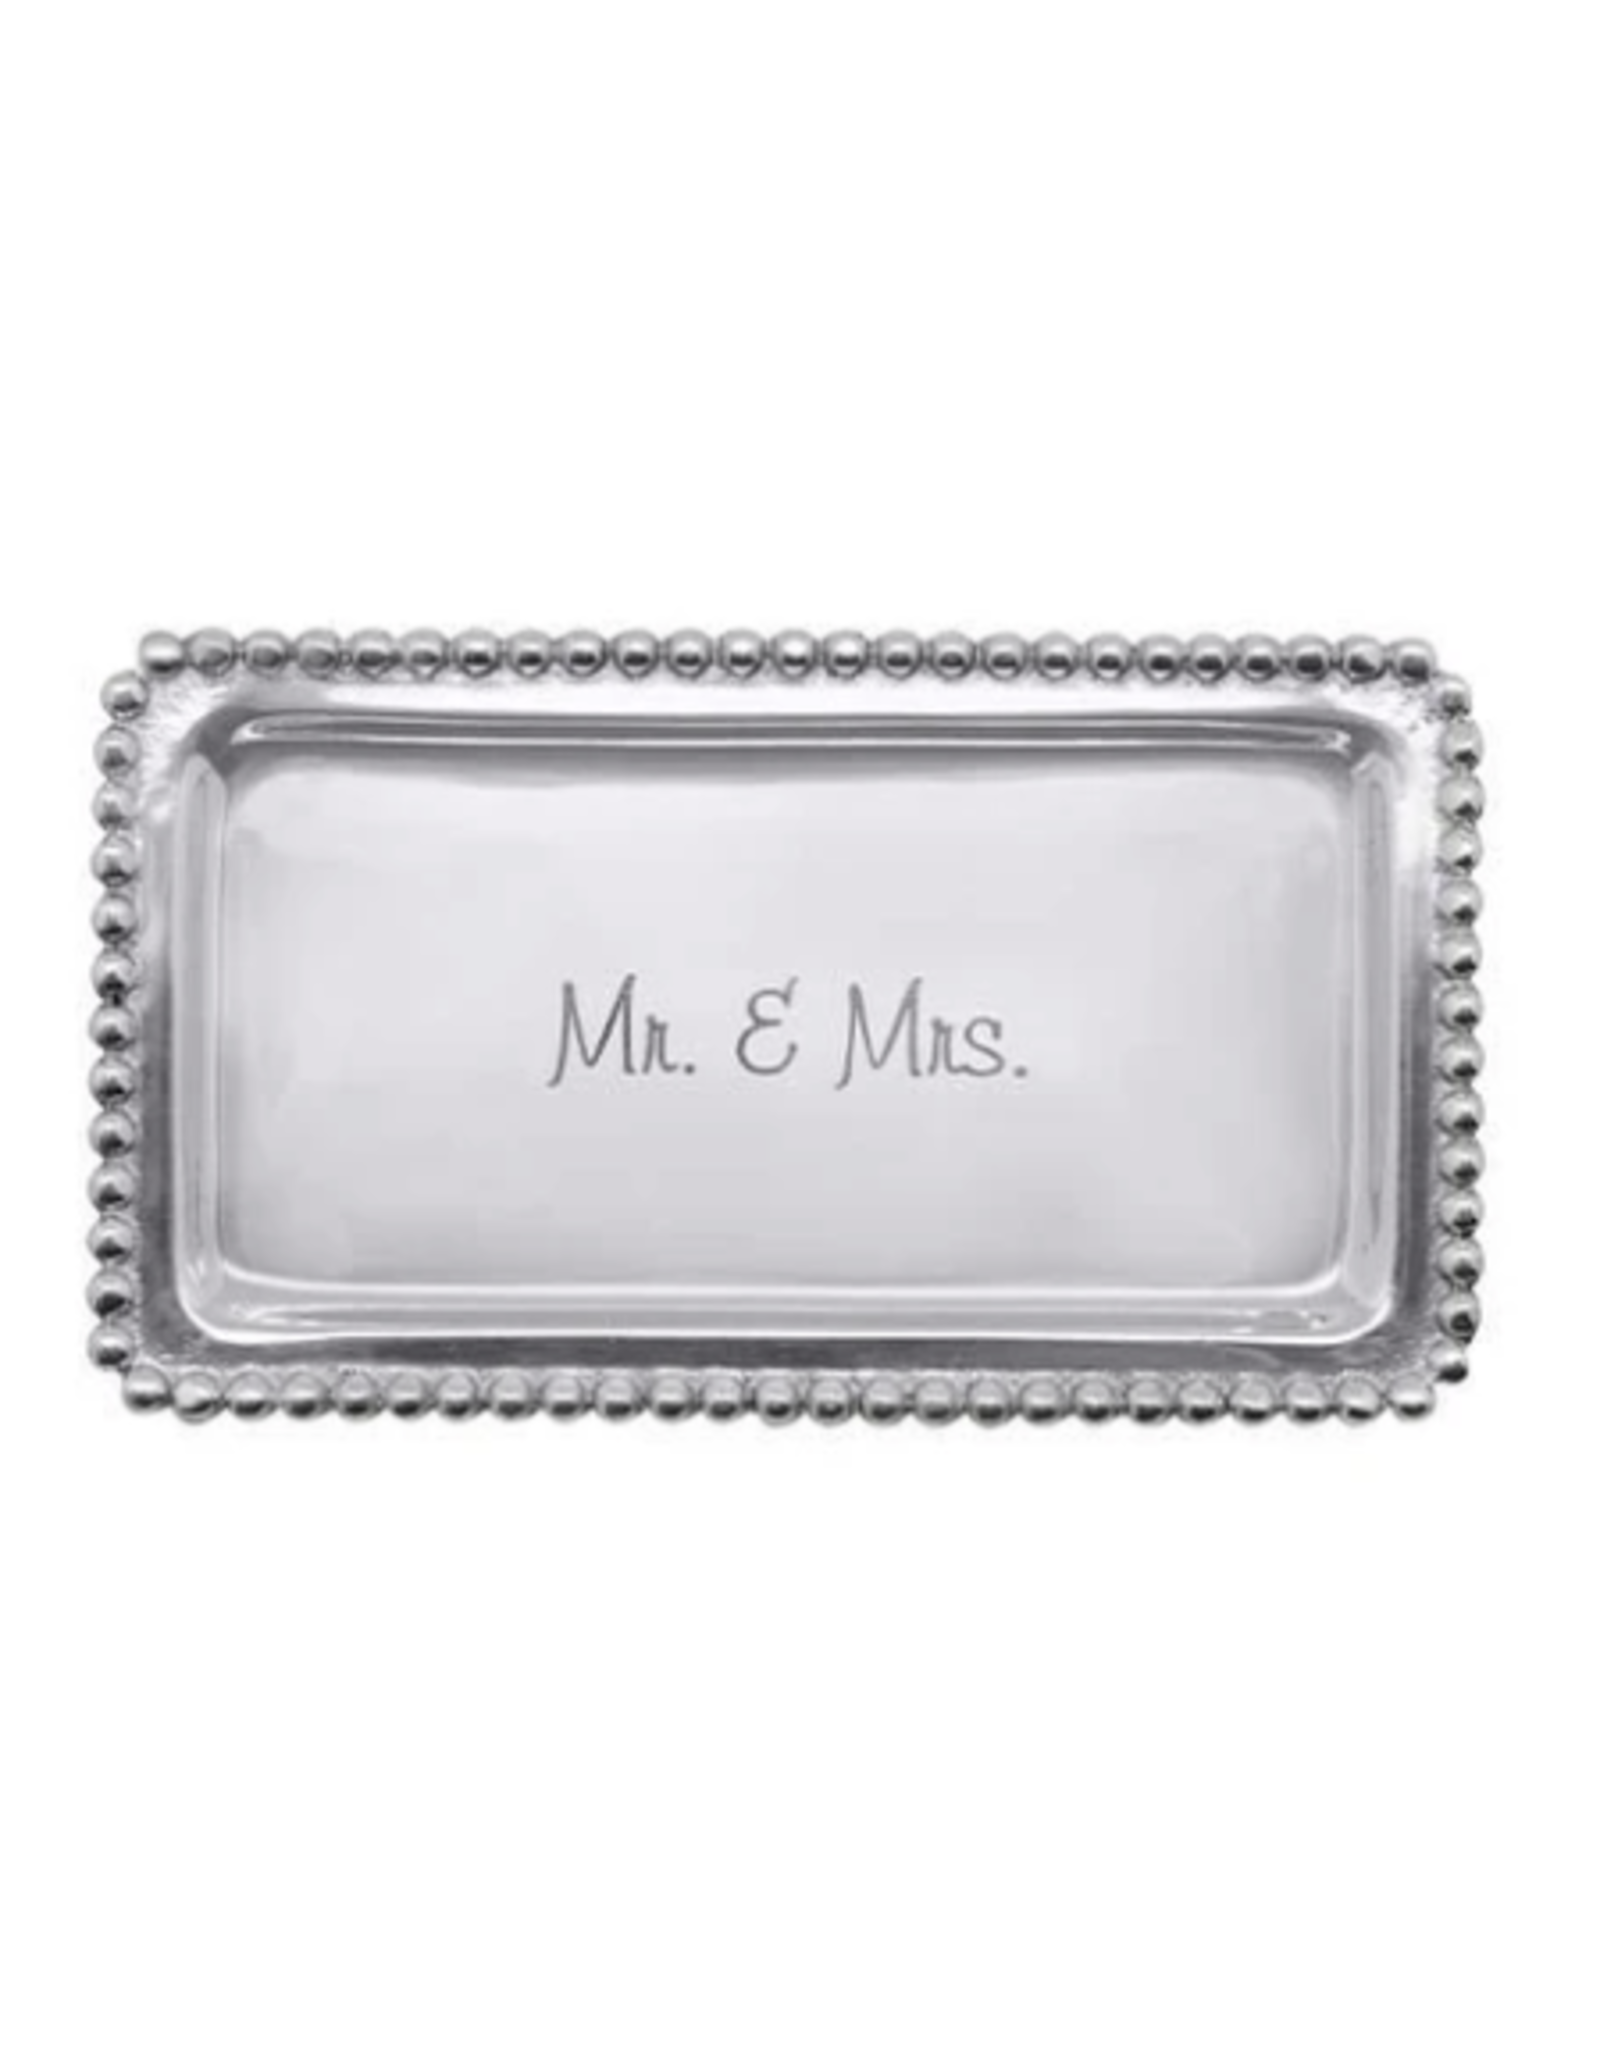 Mariposa Mr. & Mrs. Beaded Tray